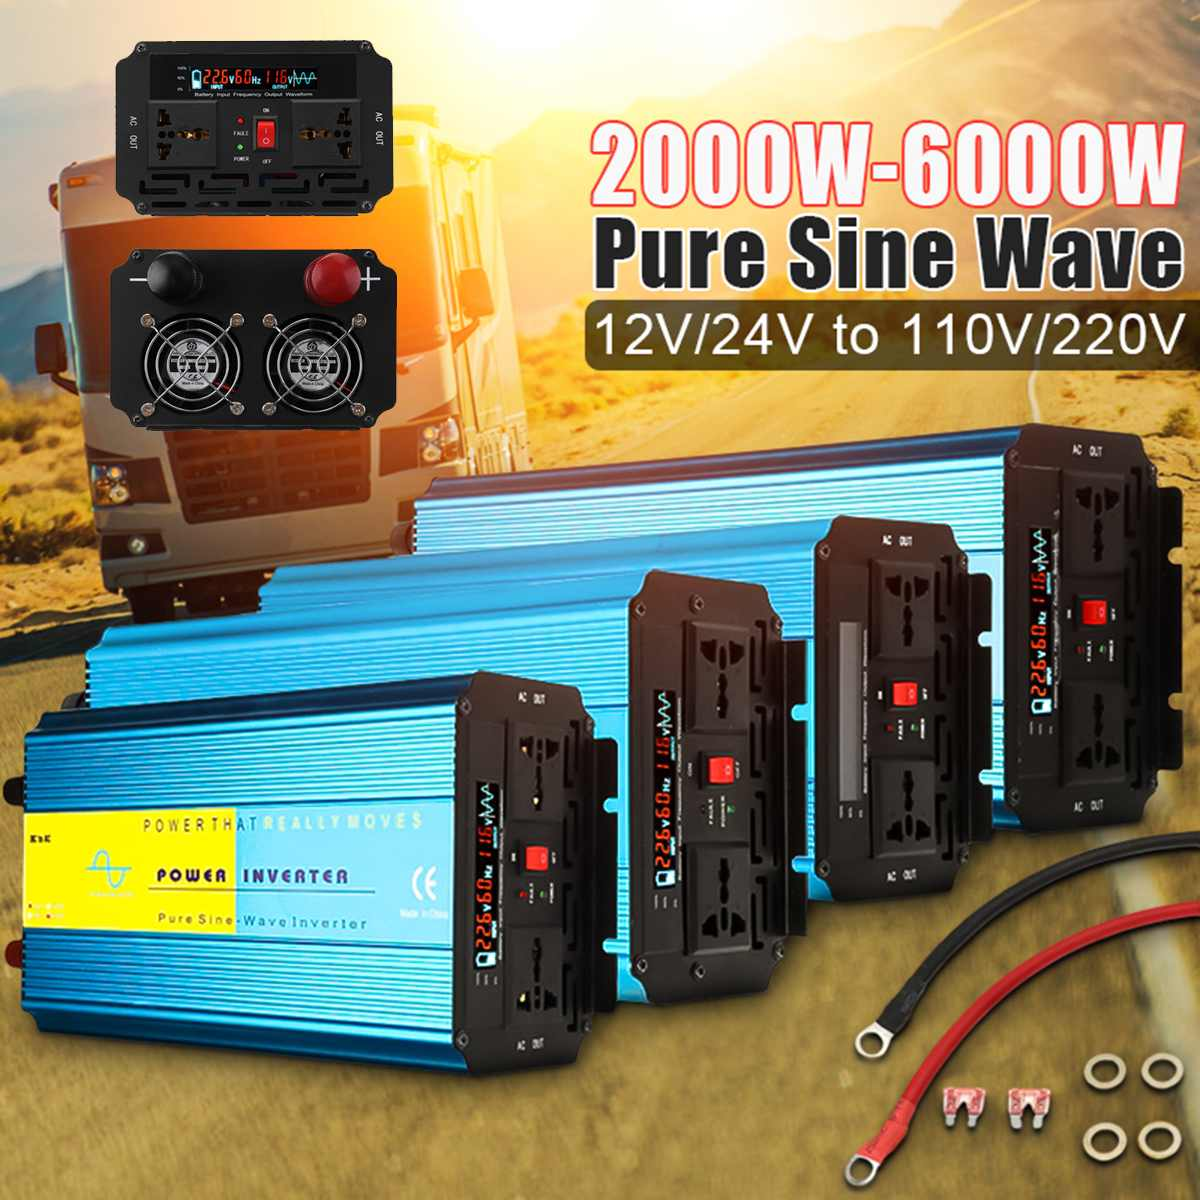 Inverter 12V 220V 6000W 5000W 4000W 3000W 2000W Pe ak Pure Sine Wave Voltage Transformer Converter 12V 110V 60Hz Solar InverterInverter 12V 220V 6000W 5000W 4000W 3000W 2000W Pe ak Pure Sine Wave Voltage Transformer Converter 12V 110V 60Hz Solar Inverter